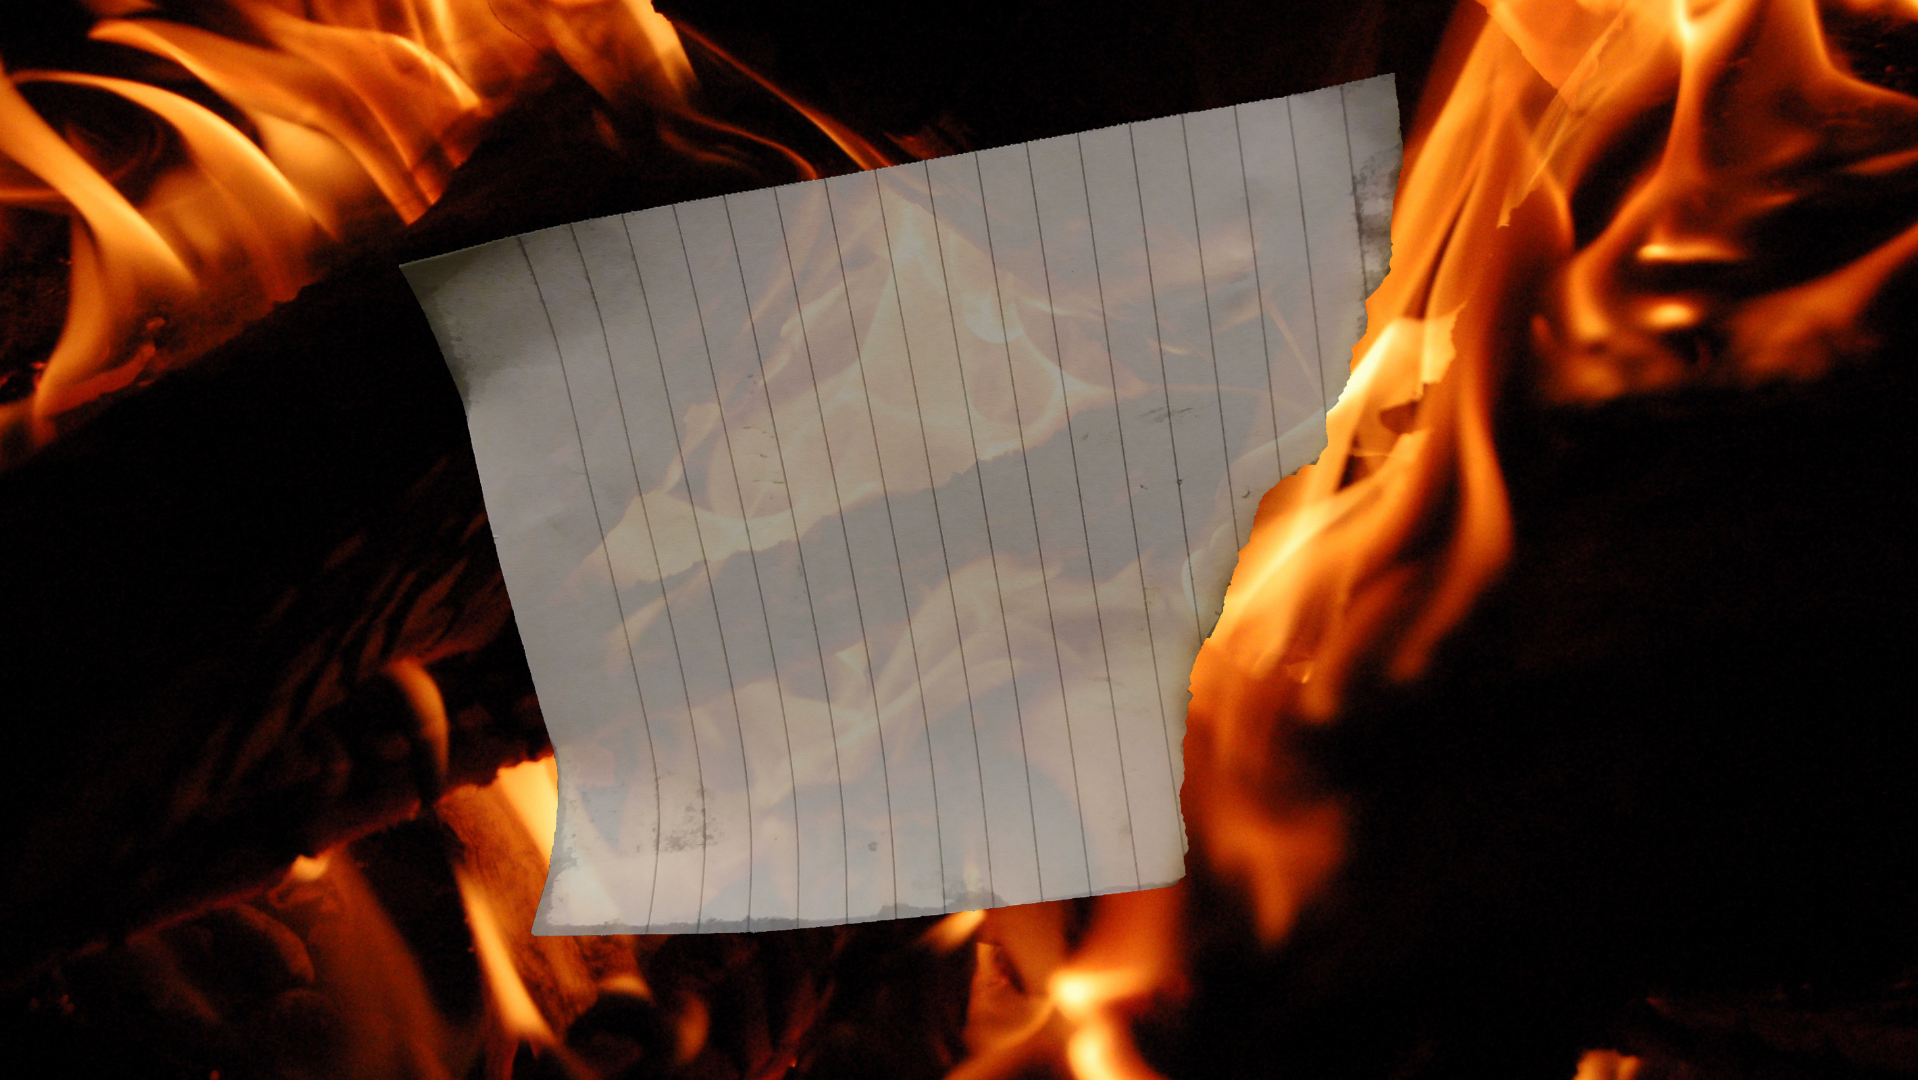 A torn page in front of a burning fire